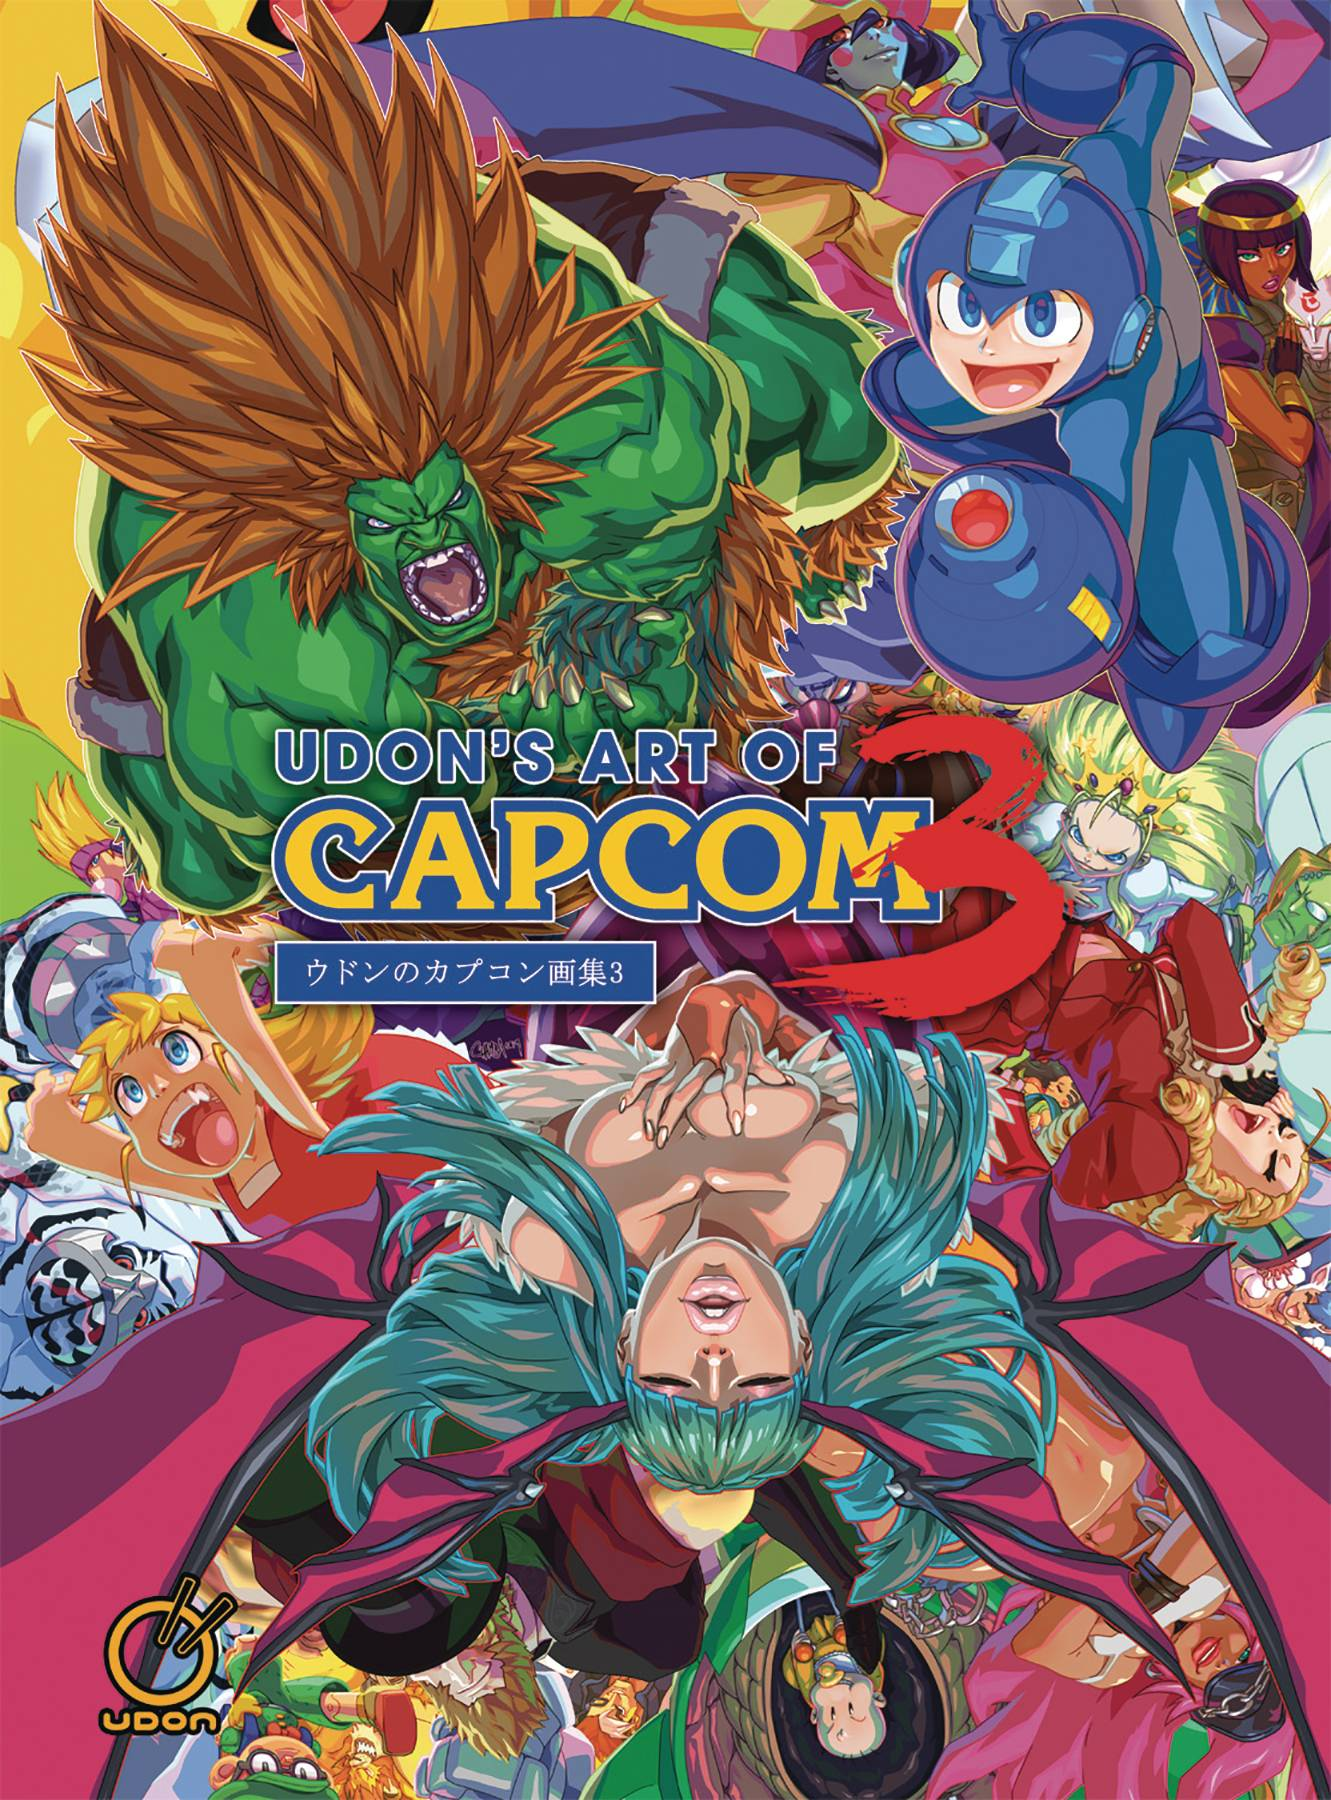 UDONS ART OF CAPCOM HC 03